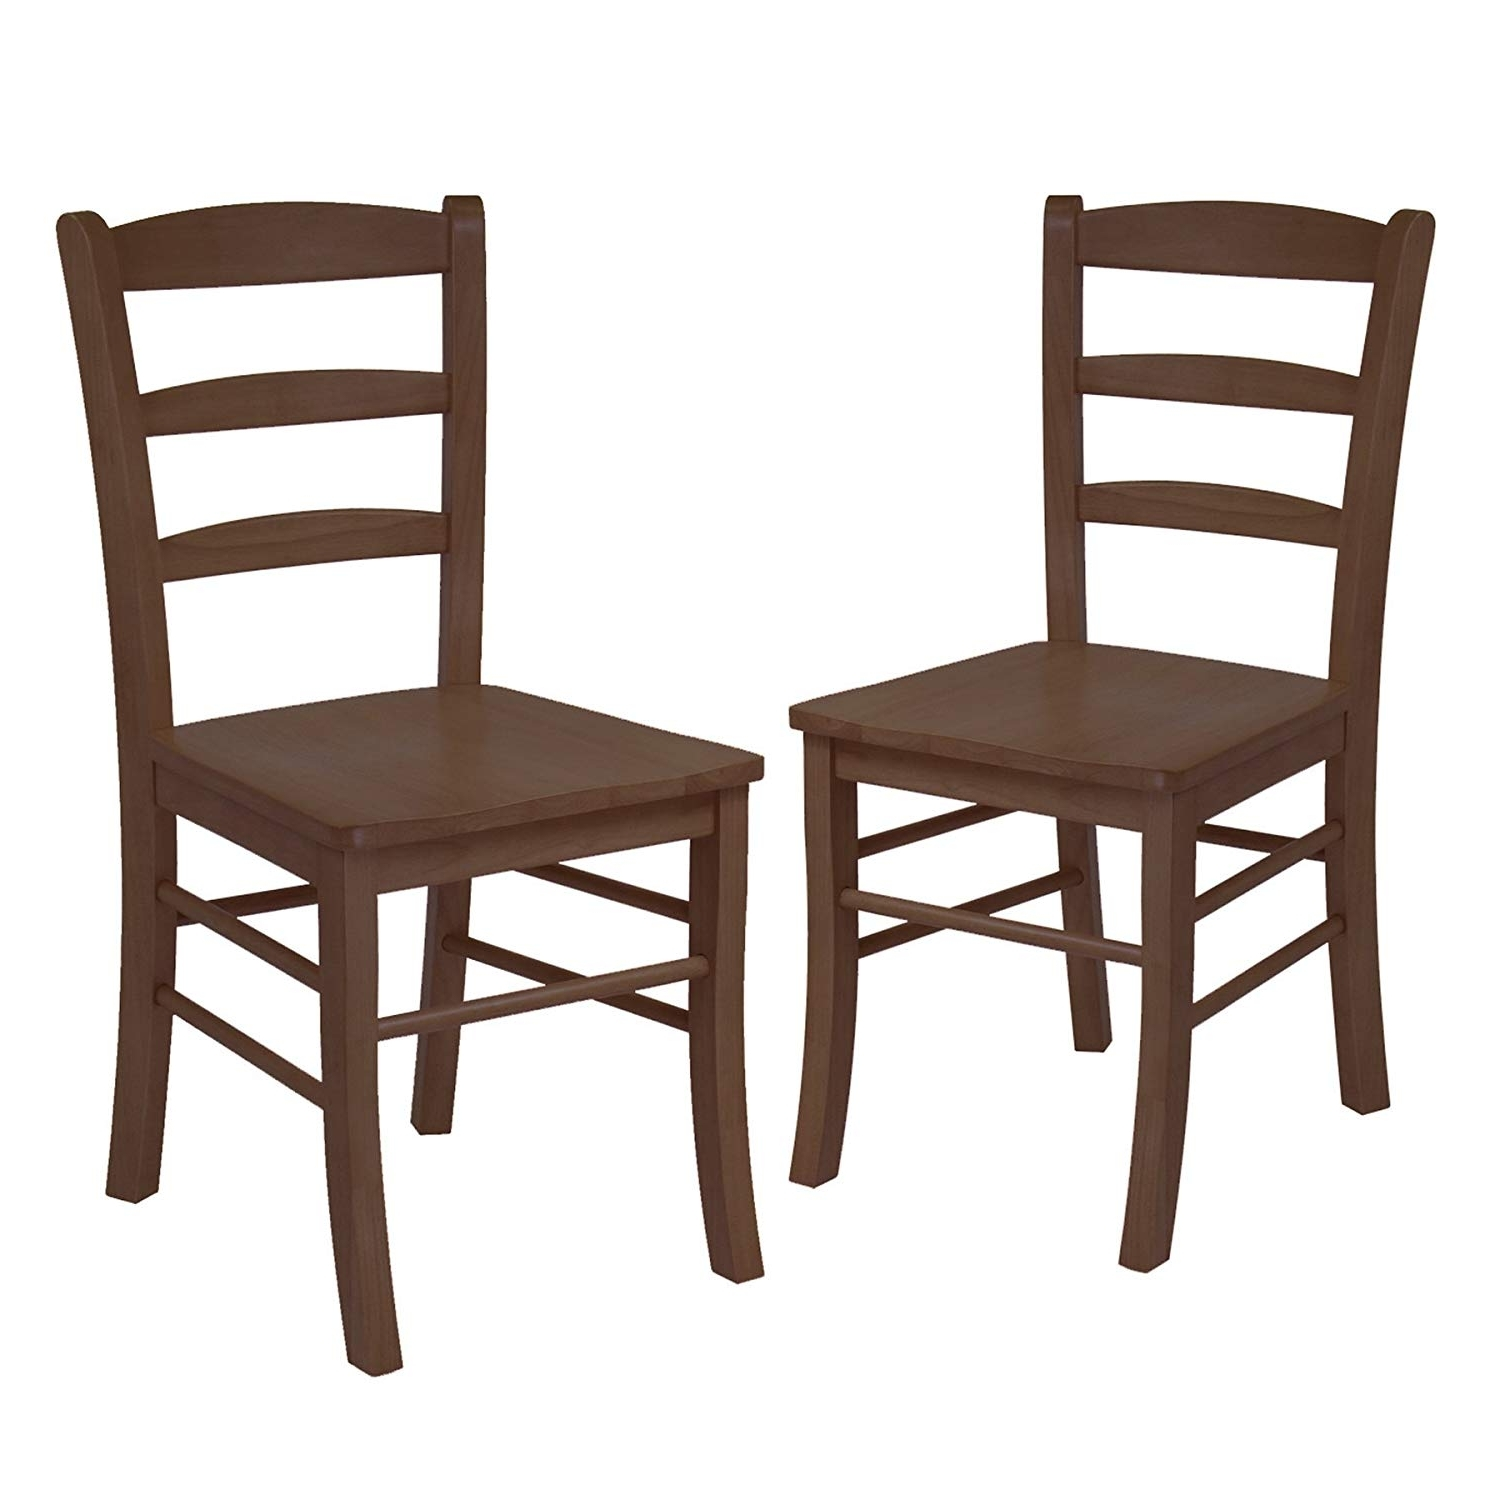 Most Up To Date Amazon: Winsome Wood 34232 Benjamin Seating, Natural: Kitchen In Natural Brown Teak Wood Leather Dining Chairs (View 10 of 20)